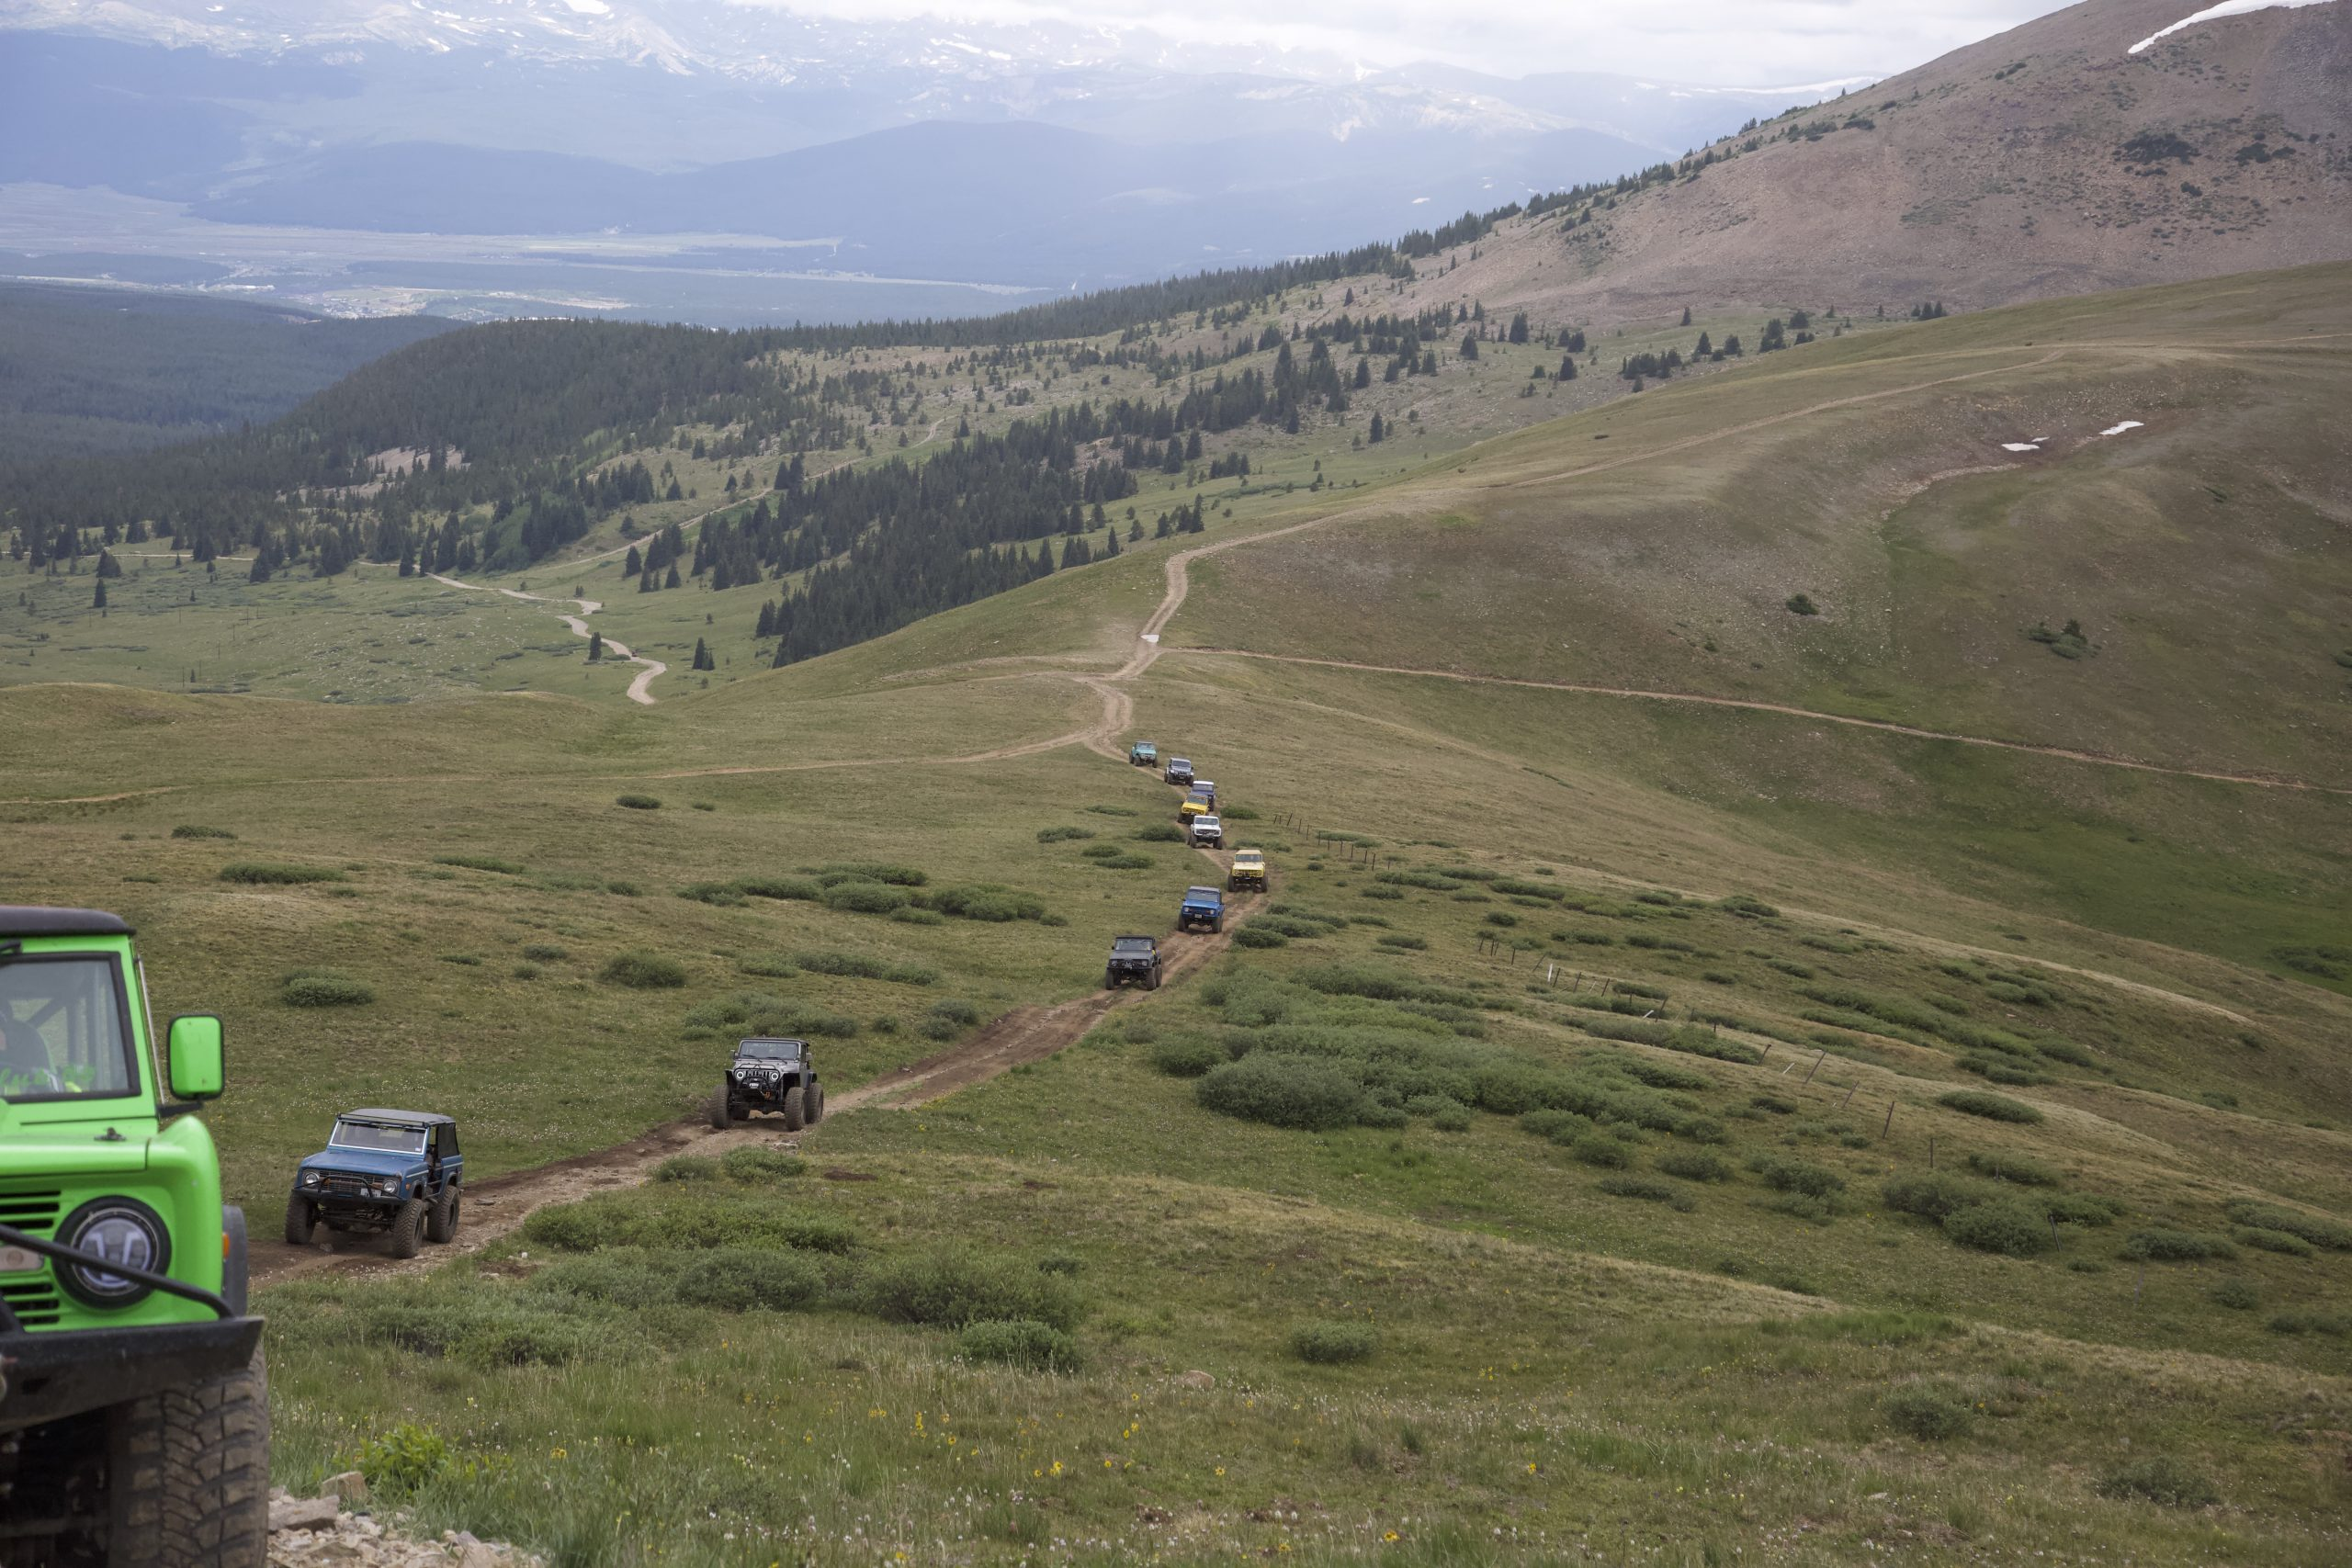 ENJOY RESPONSIBLY – TIPS AND ETIQUETTE FOR THE TRAIL